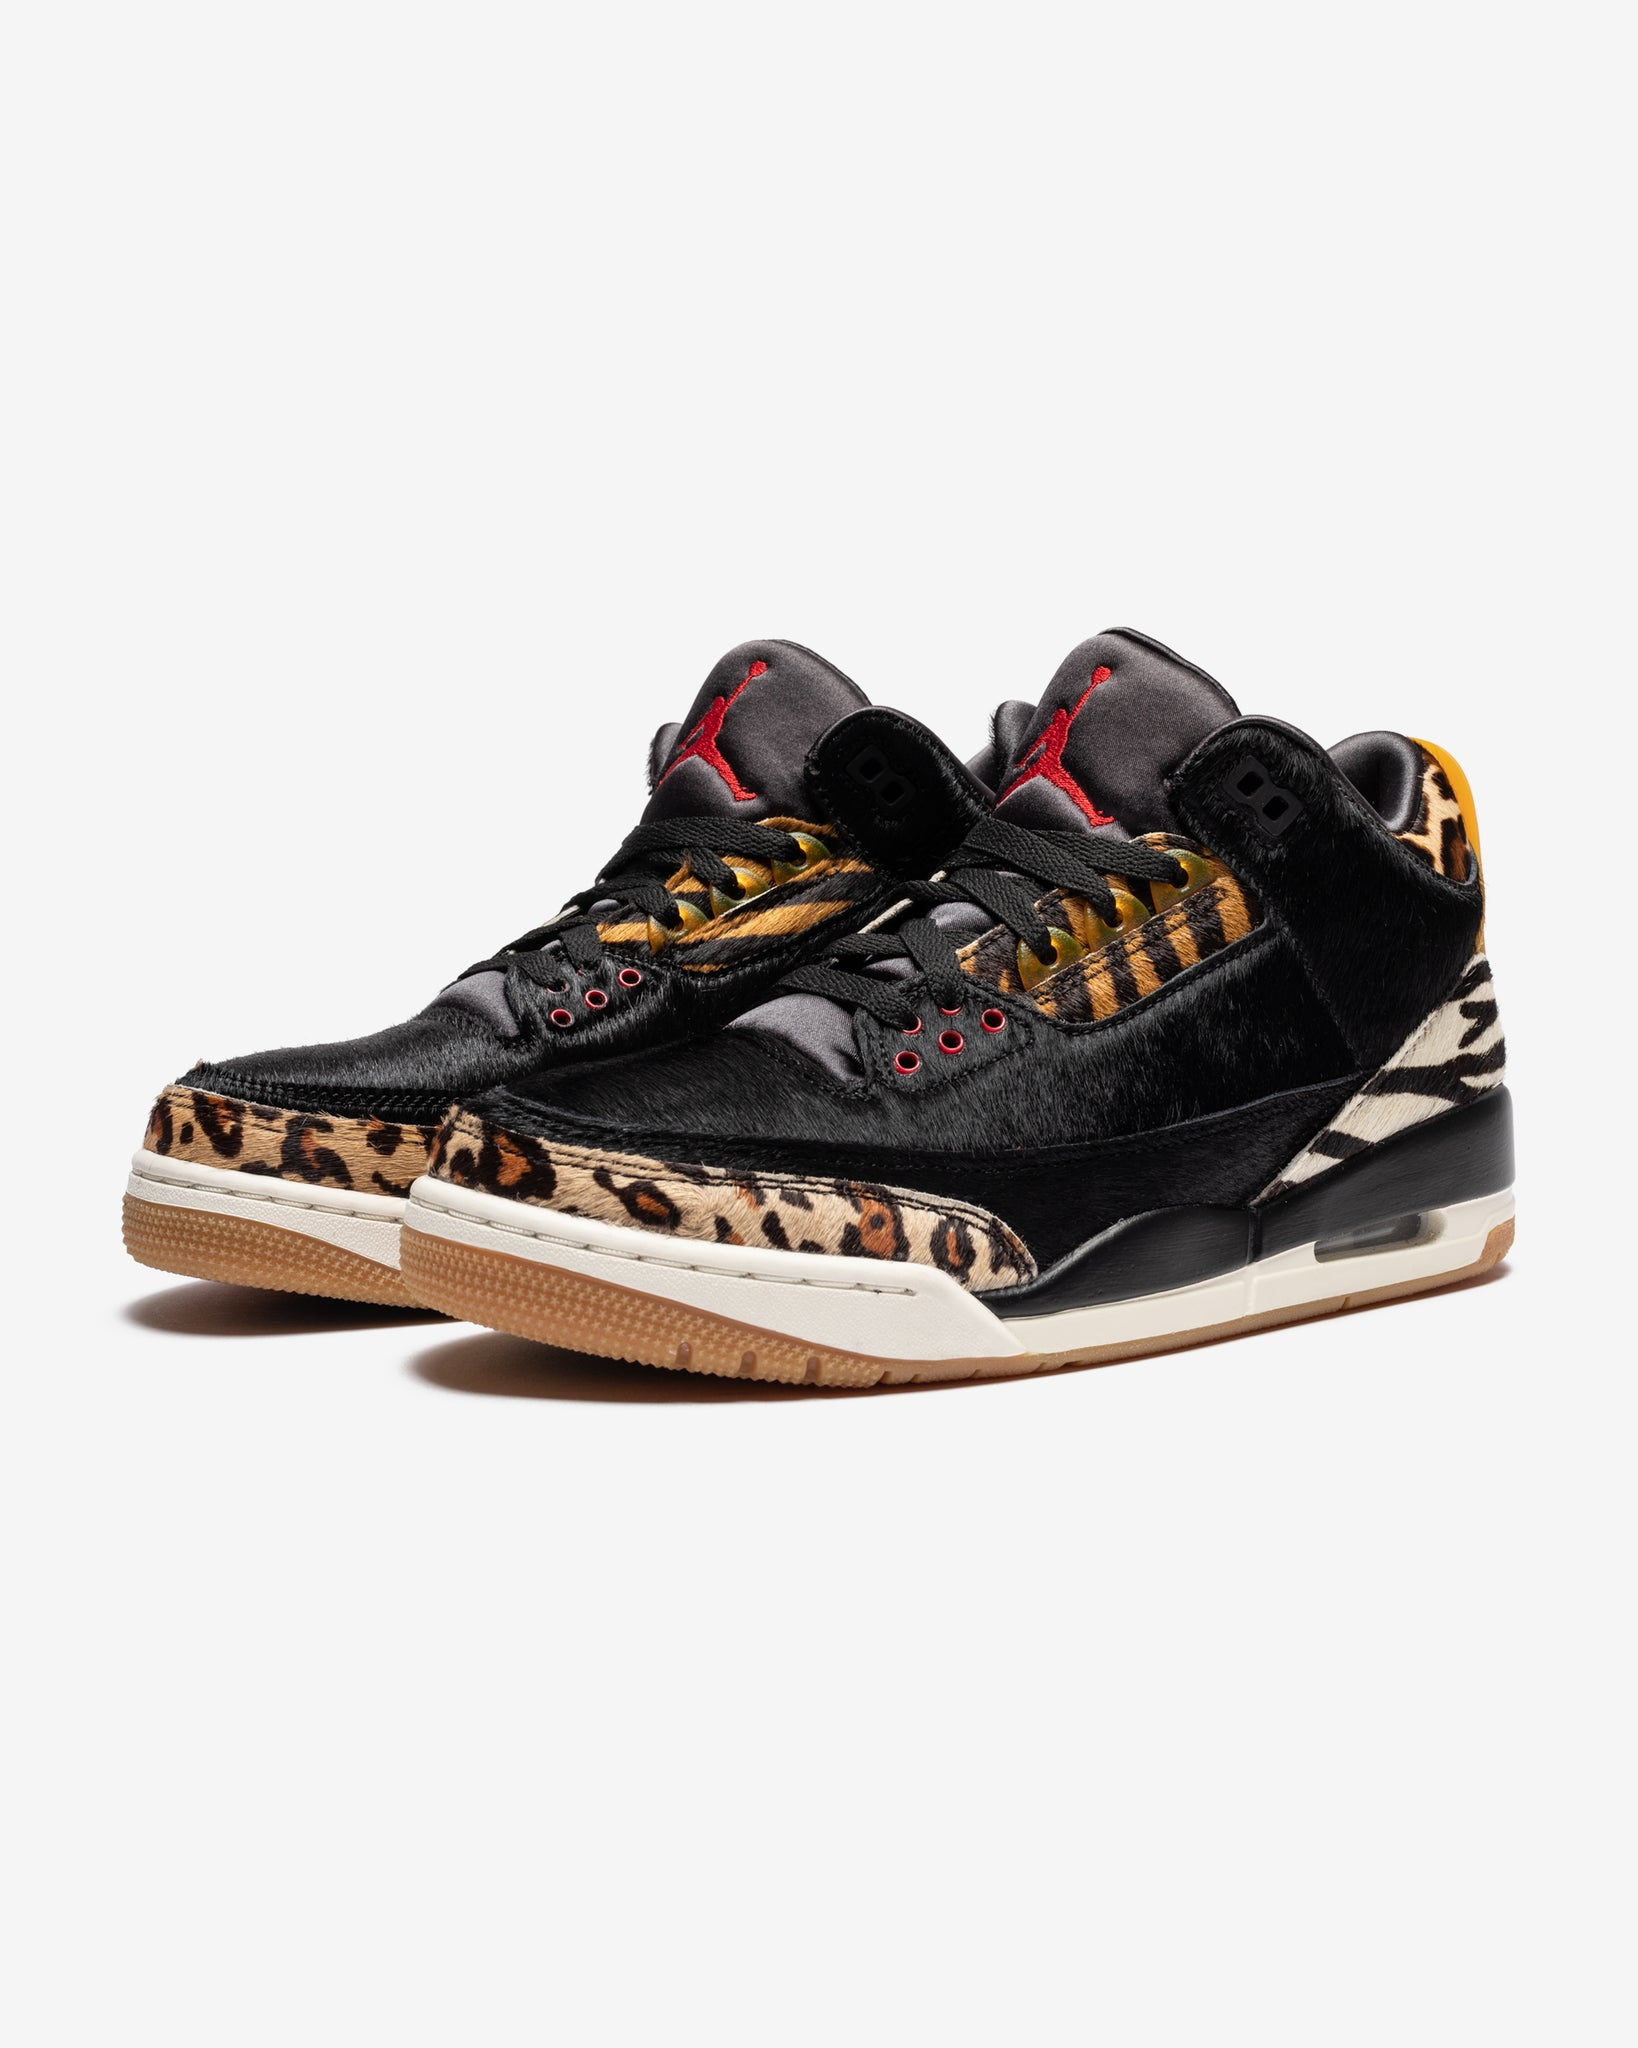 AJ 3 RETRO SE - BLACK/MULTI-COLOR/DARKMOCHA/ROPE